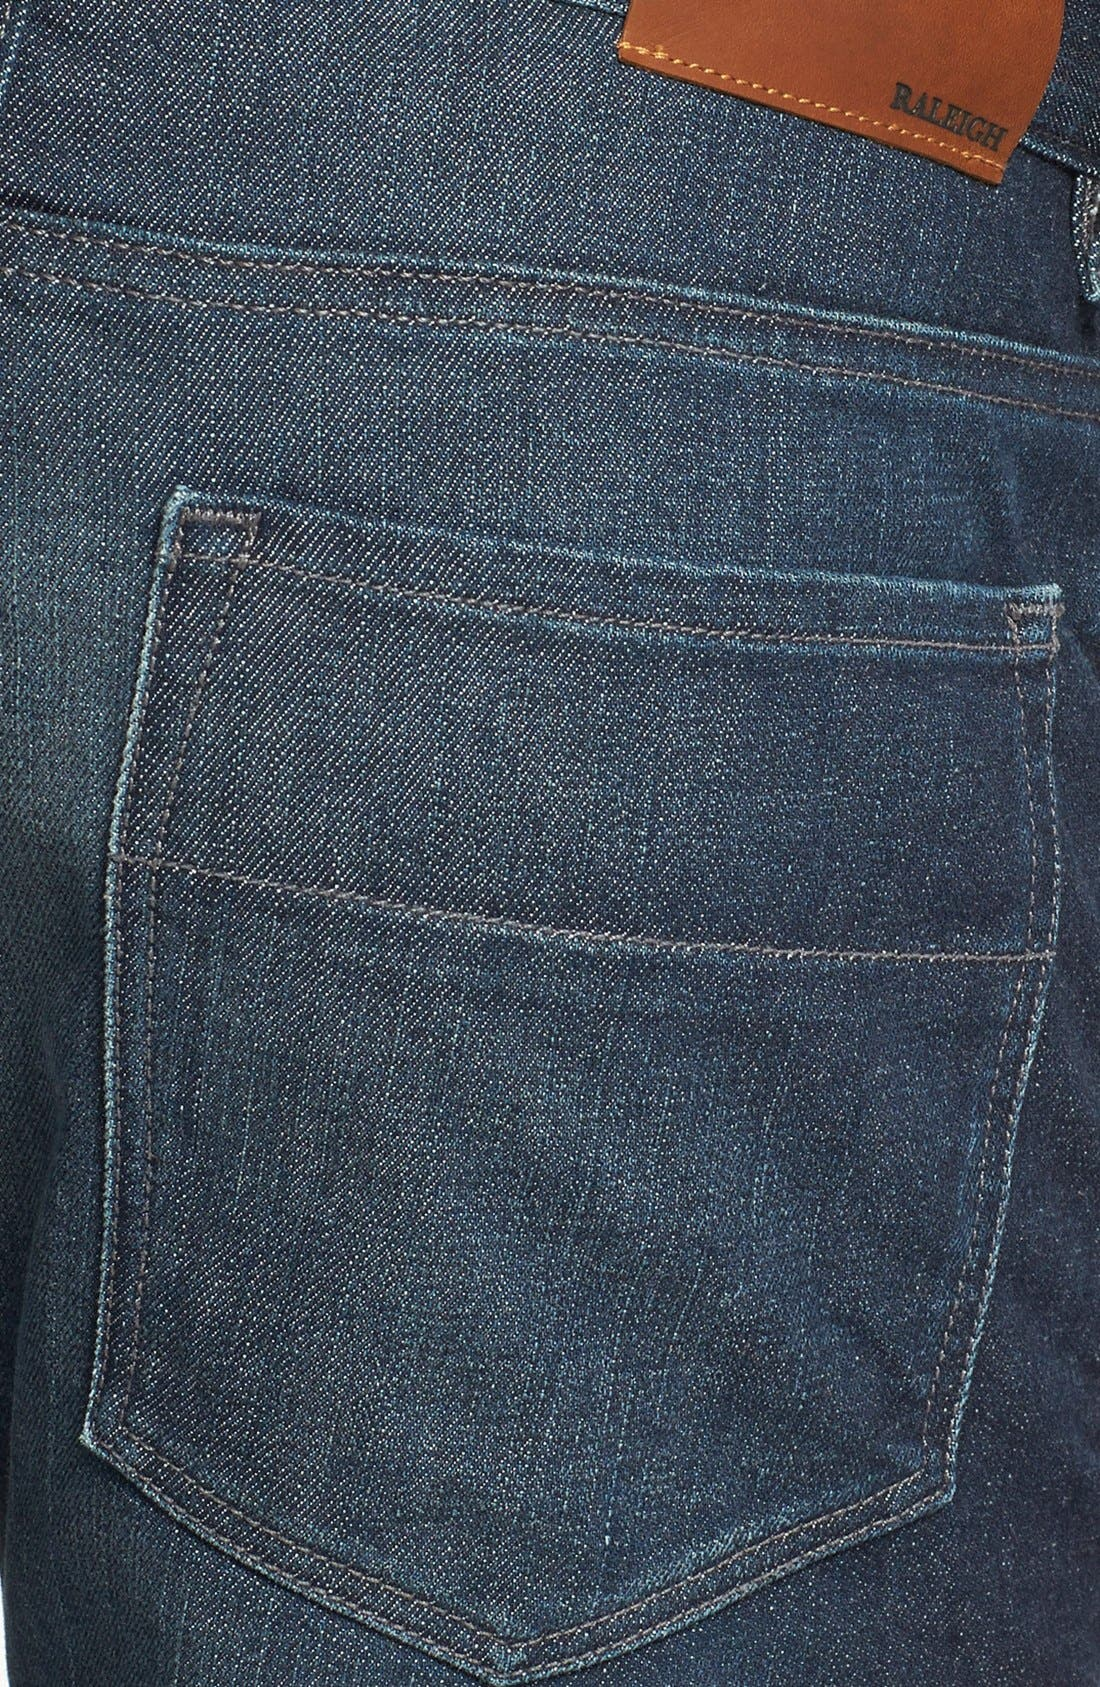 'Martin' Slim Fit Jeans,                             Alternate thumbnail 3, color,                             MASON